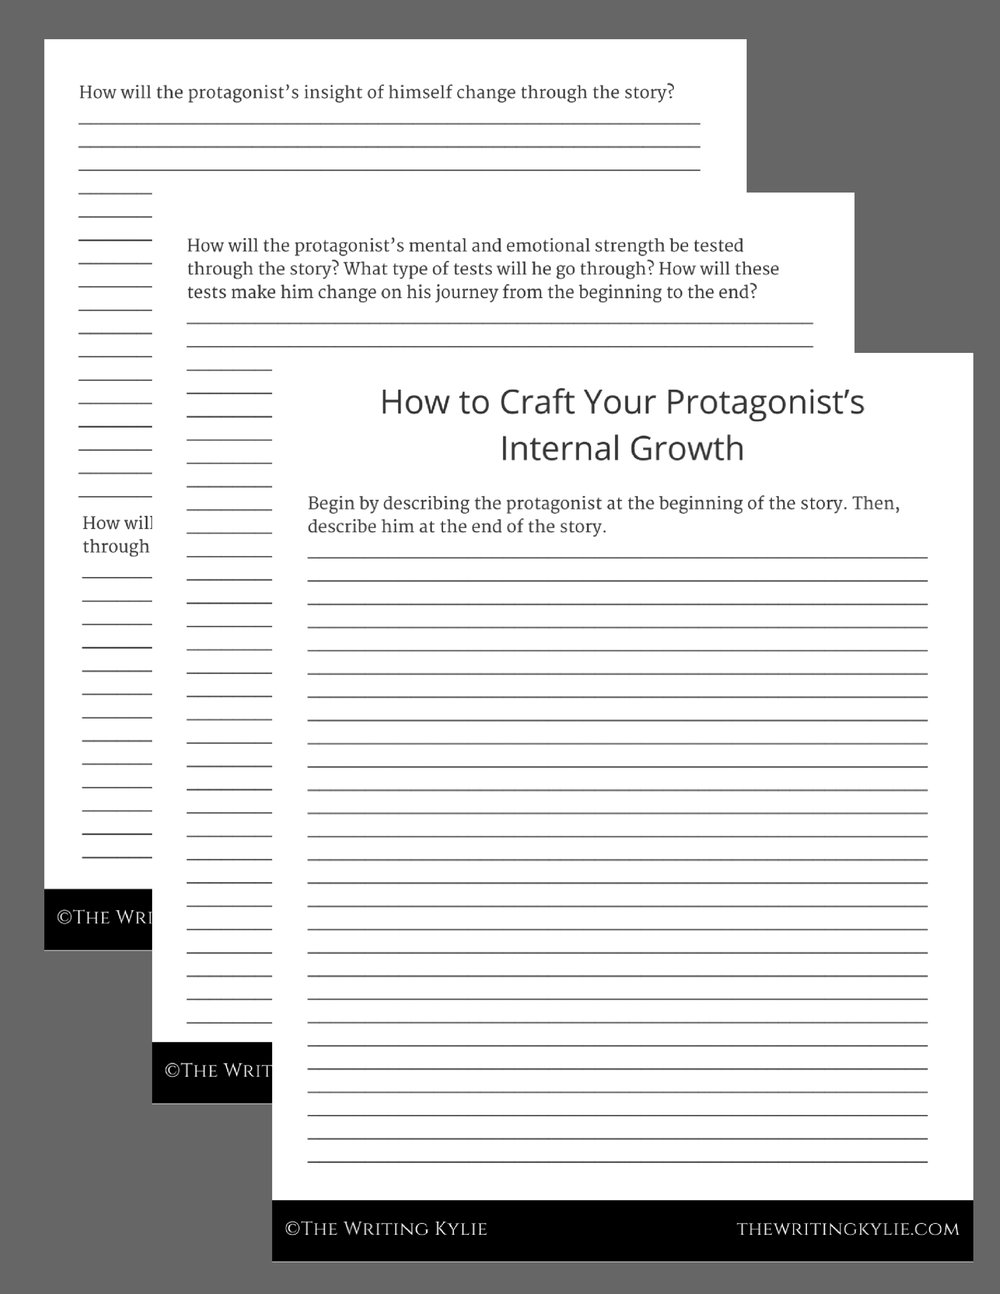 How to Craft Your Protagonist's Internal Growth Worksheets.jpg